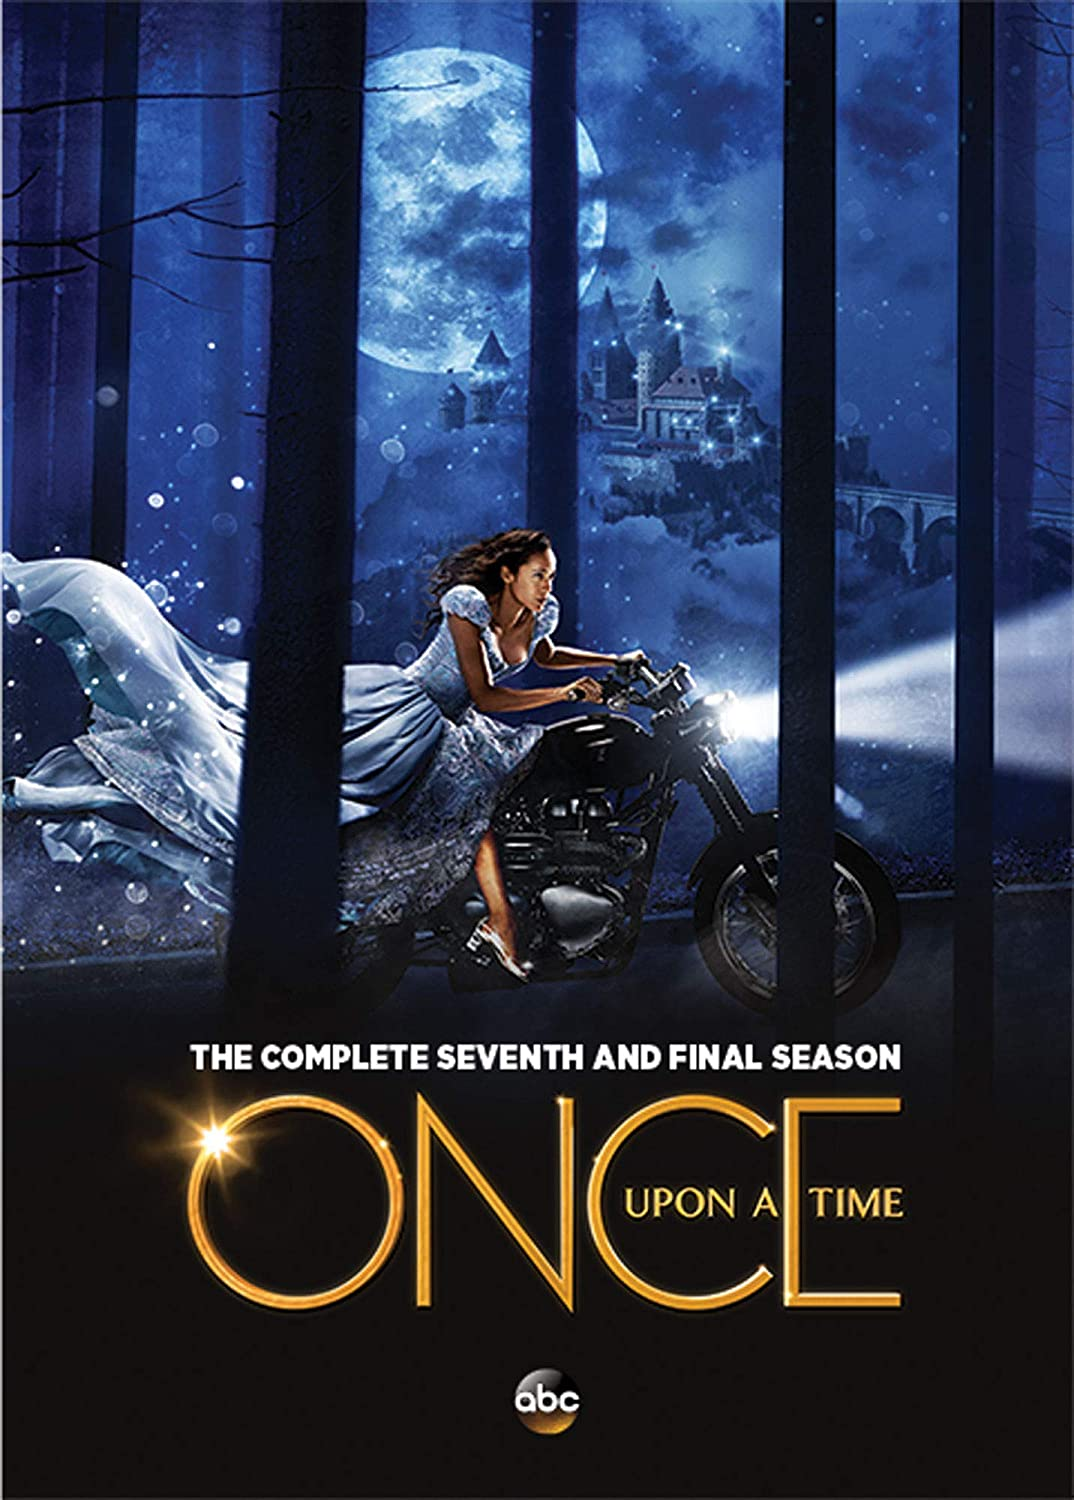 Once Upon a Time: The Complete Seventh and Final Season Lana Parrilla Colin O'Donoghue Robert Carlyle Andrew J. West